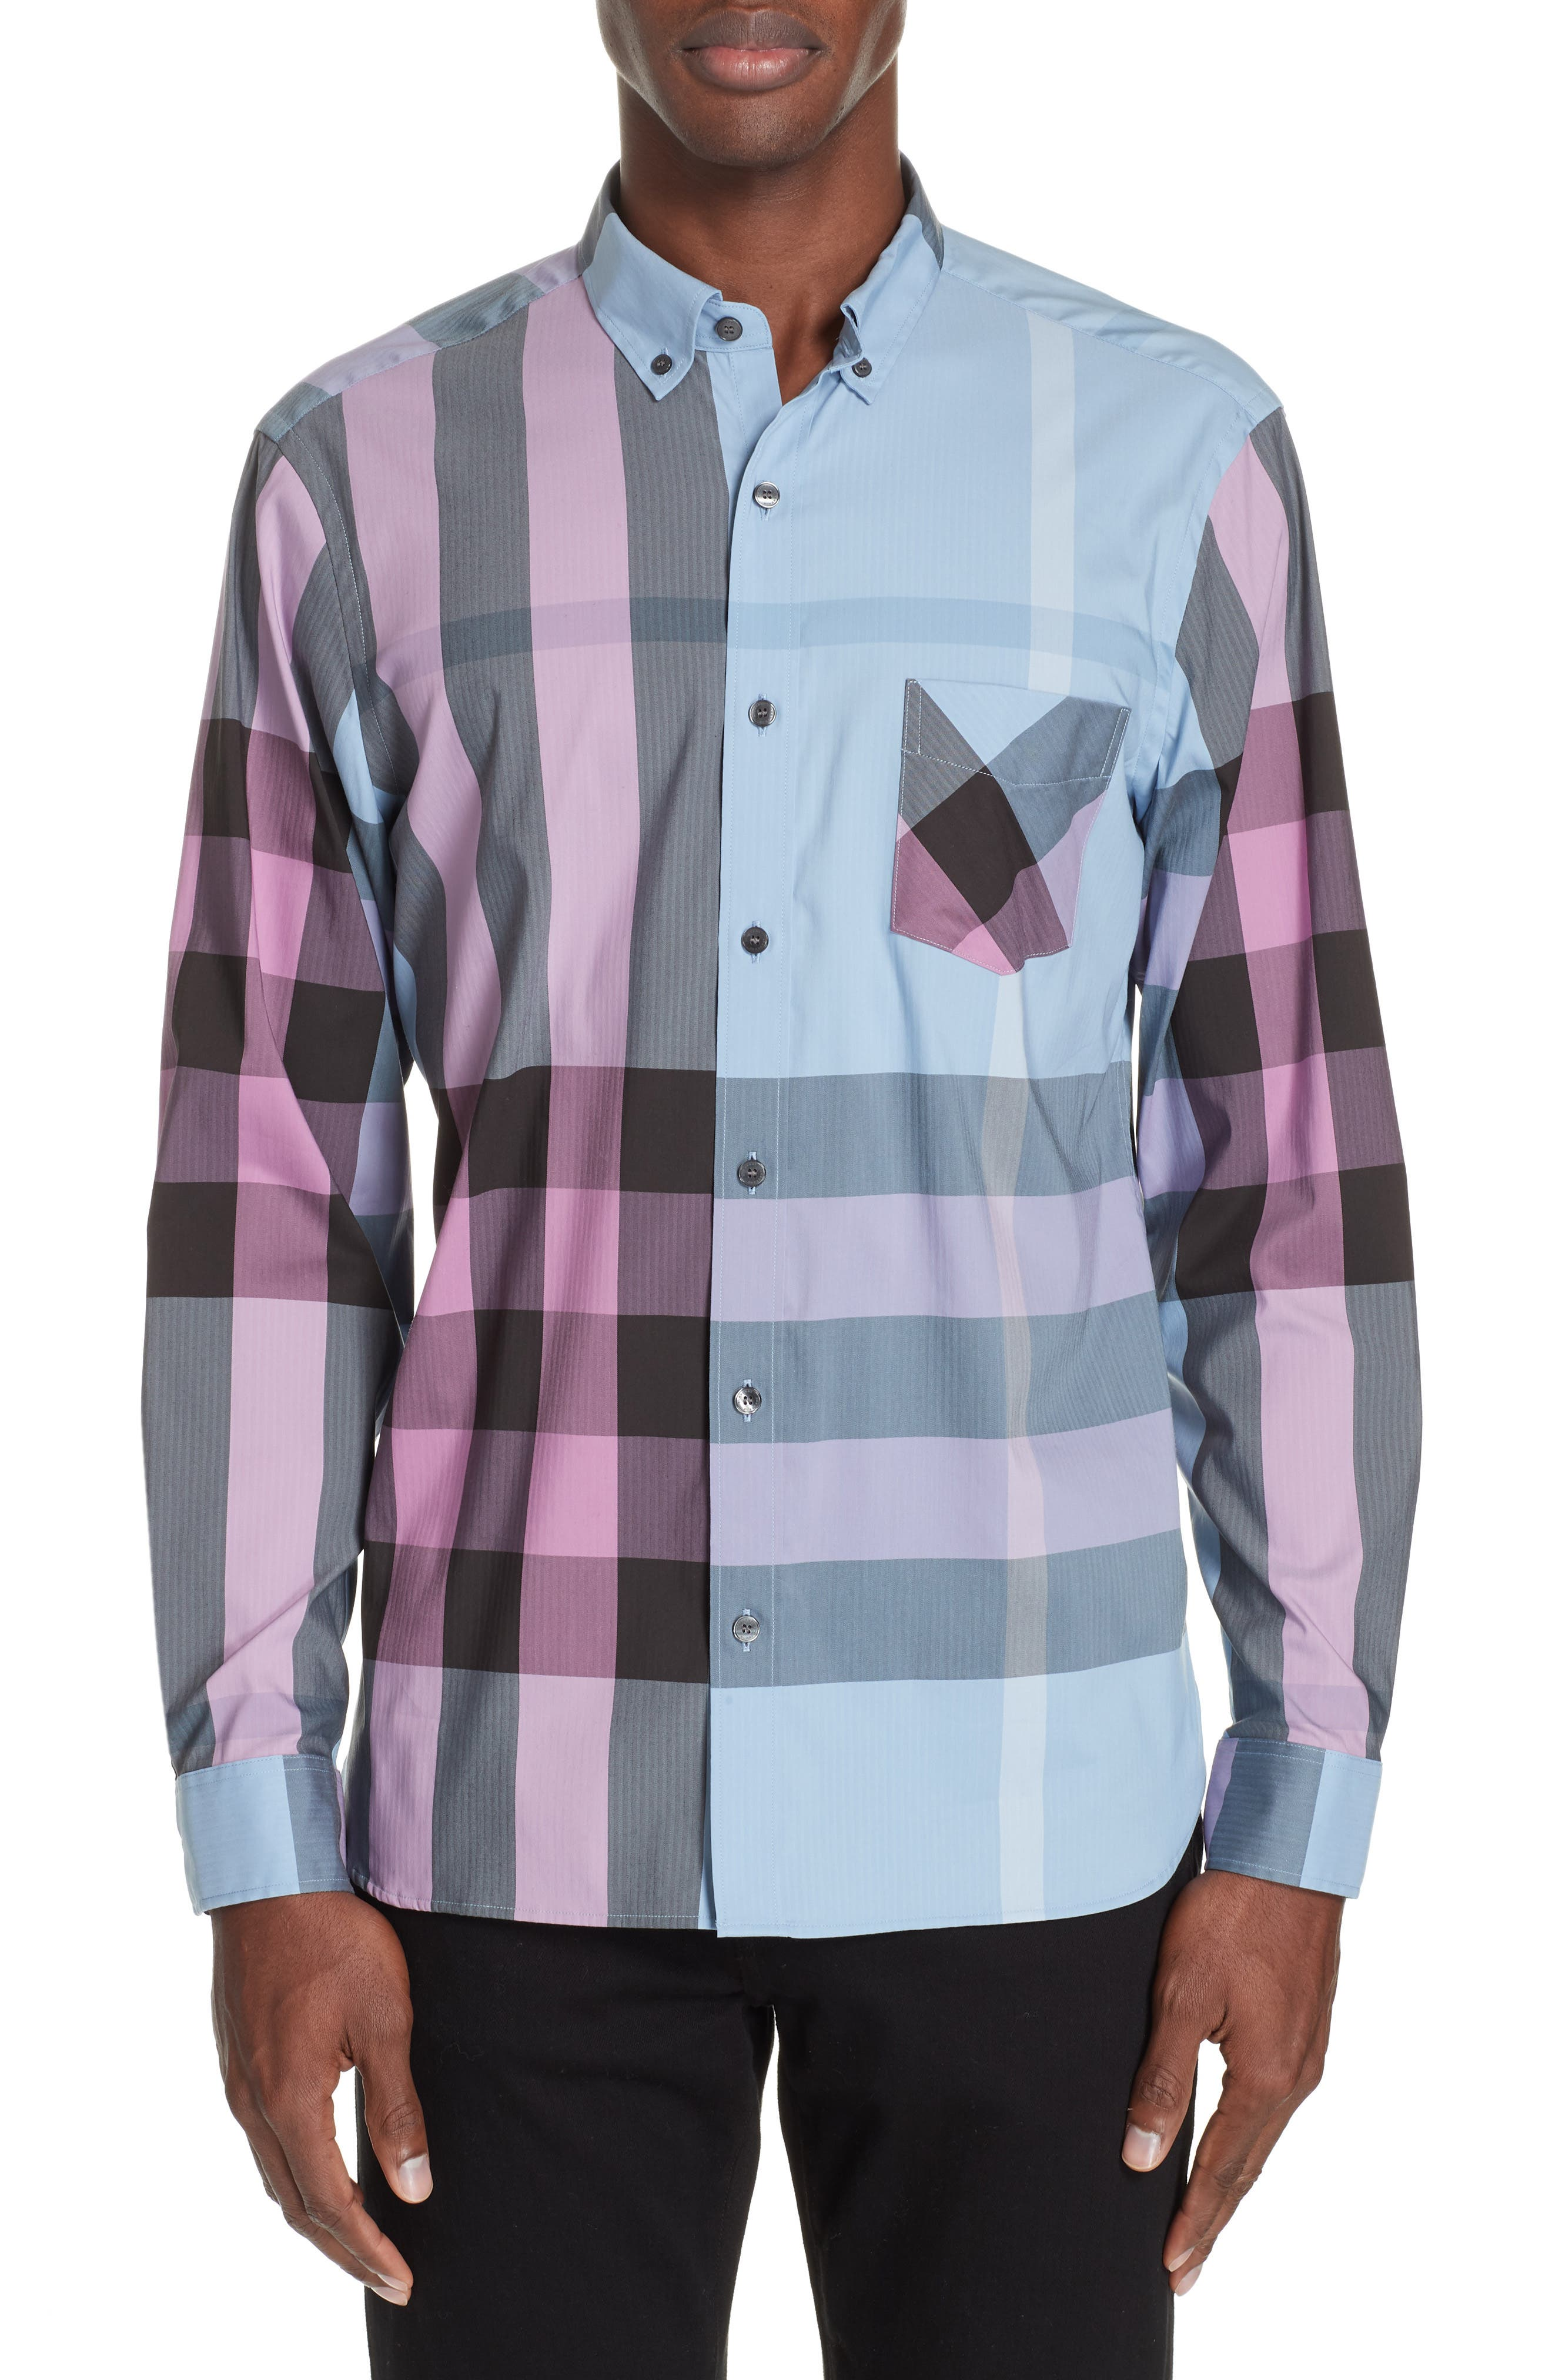 BURBERRY, Thornaby Slim Fit Check Sport Shirt, Main thumbnail 1, color, 400